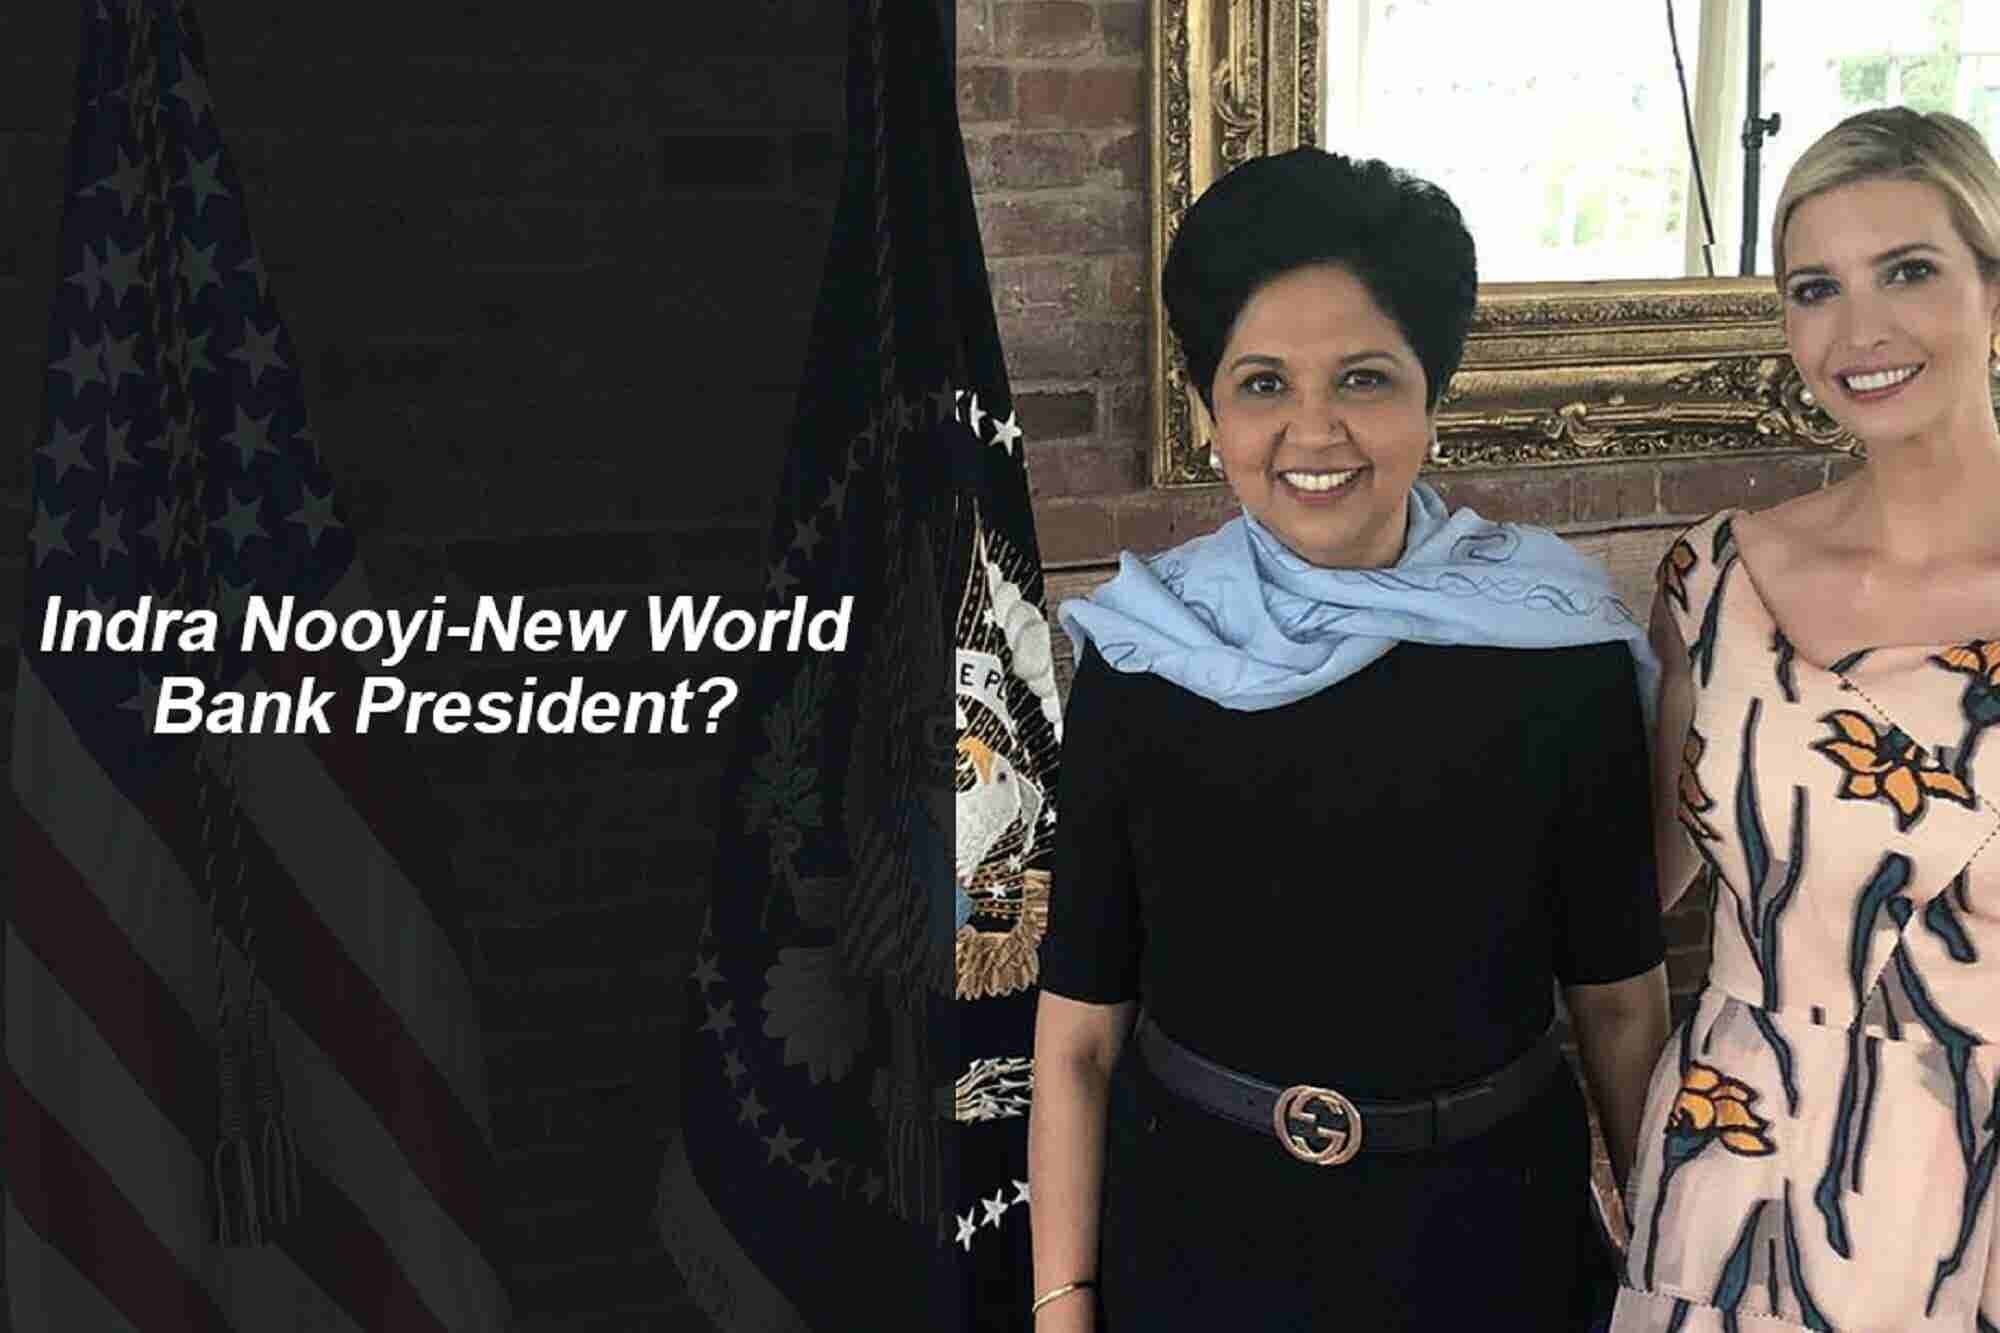 Beyond India: Indra Nooyi for World Bank President & Elon Musk's New Fan